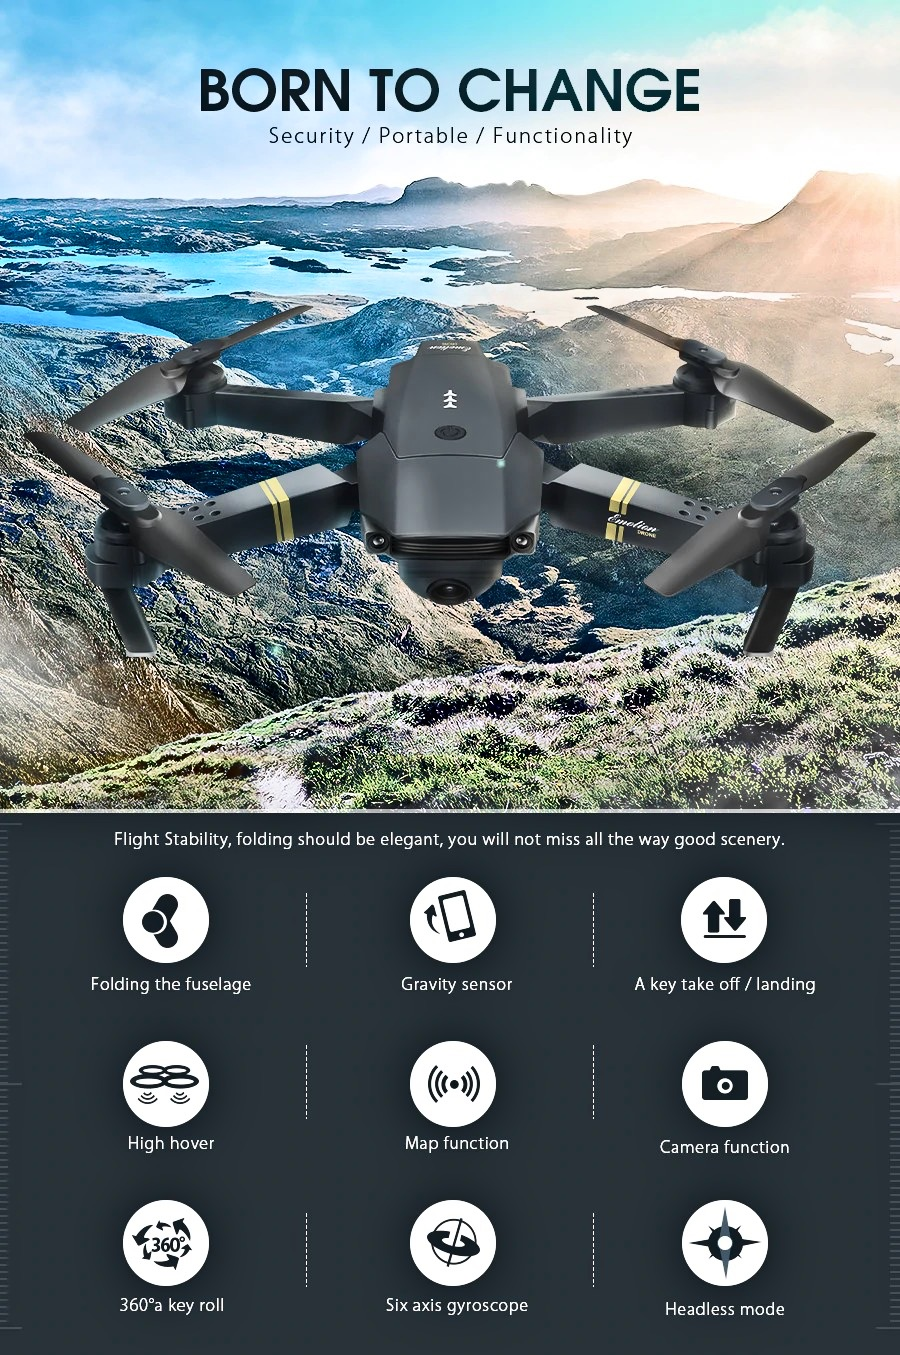 Eachine E58 WIFI FPV With 720P/1080P HD Wide Angle Camera High Hold Mode Foldable RC Drone Quadcopter RTF - Black With Storage Bag 1080P HD Wide Angle Three Batteries